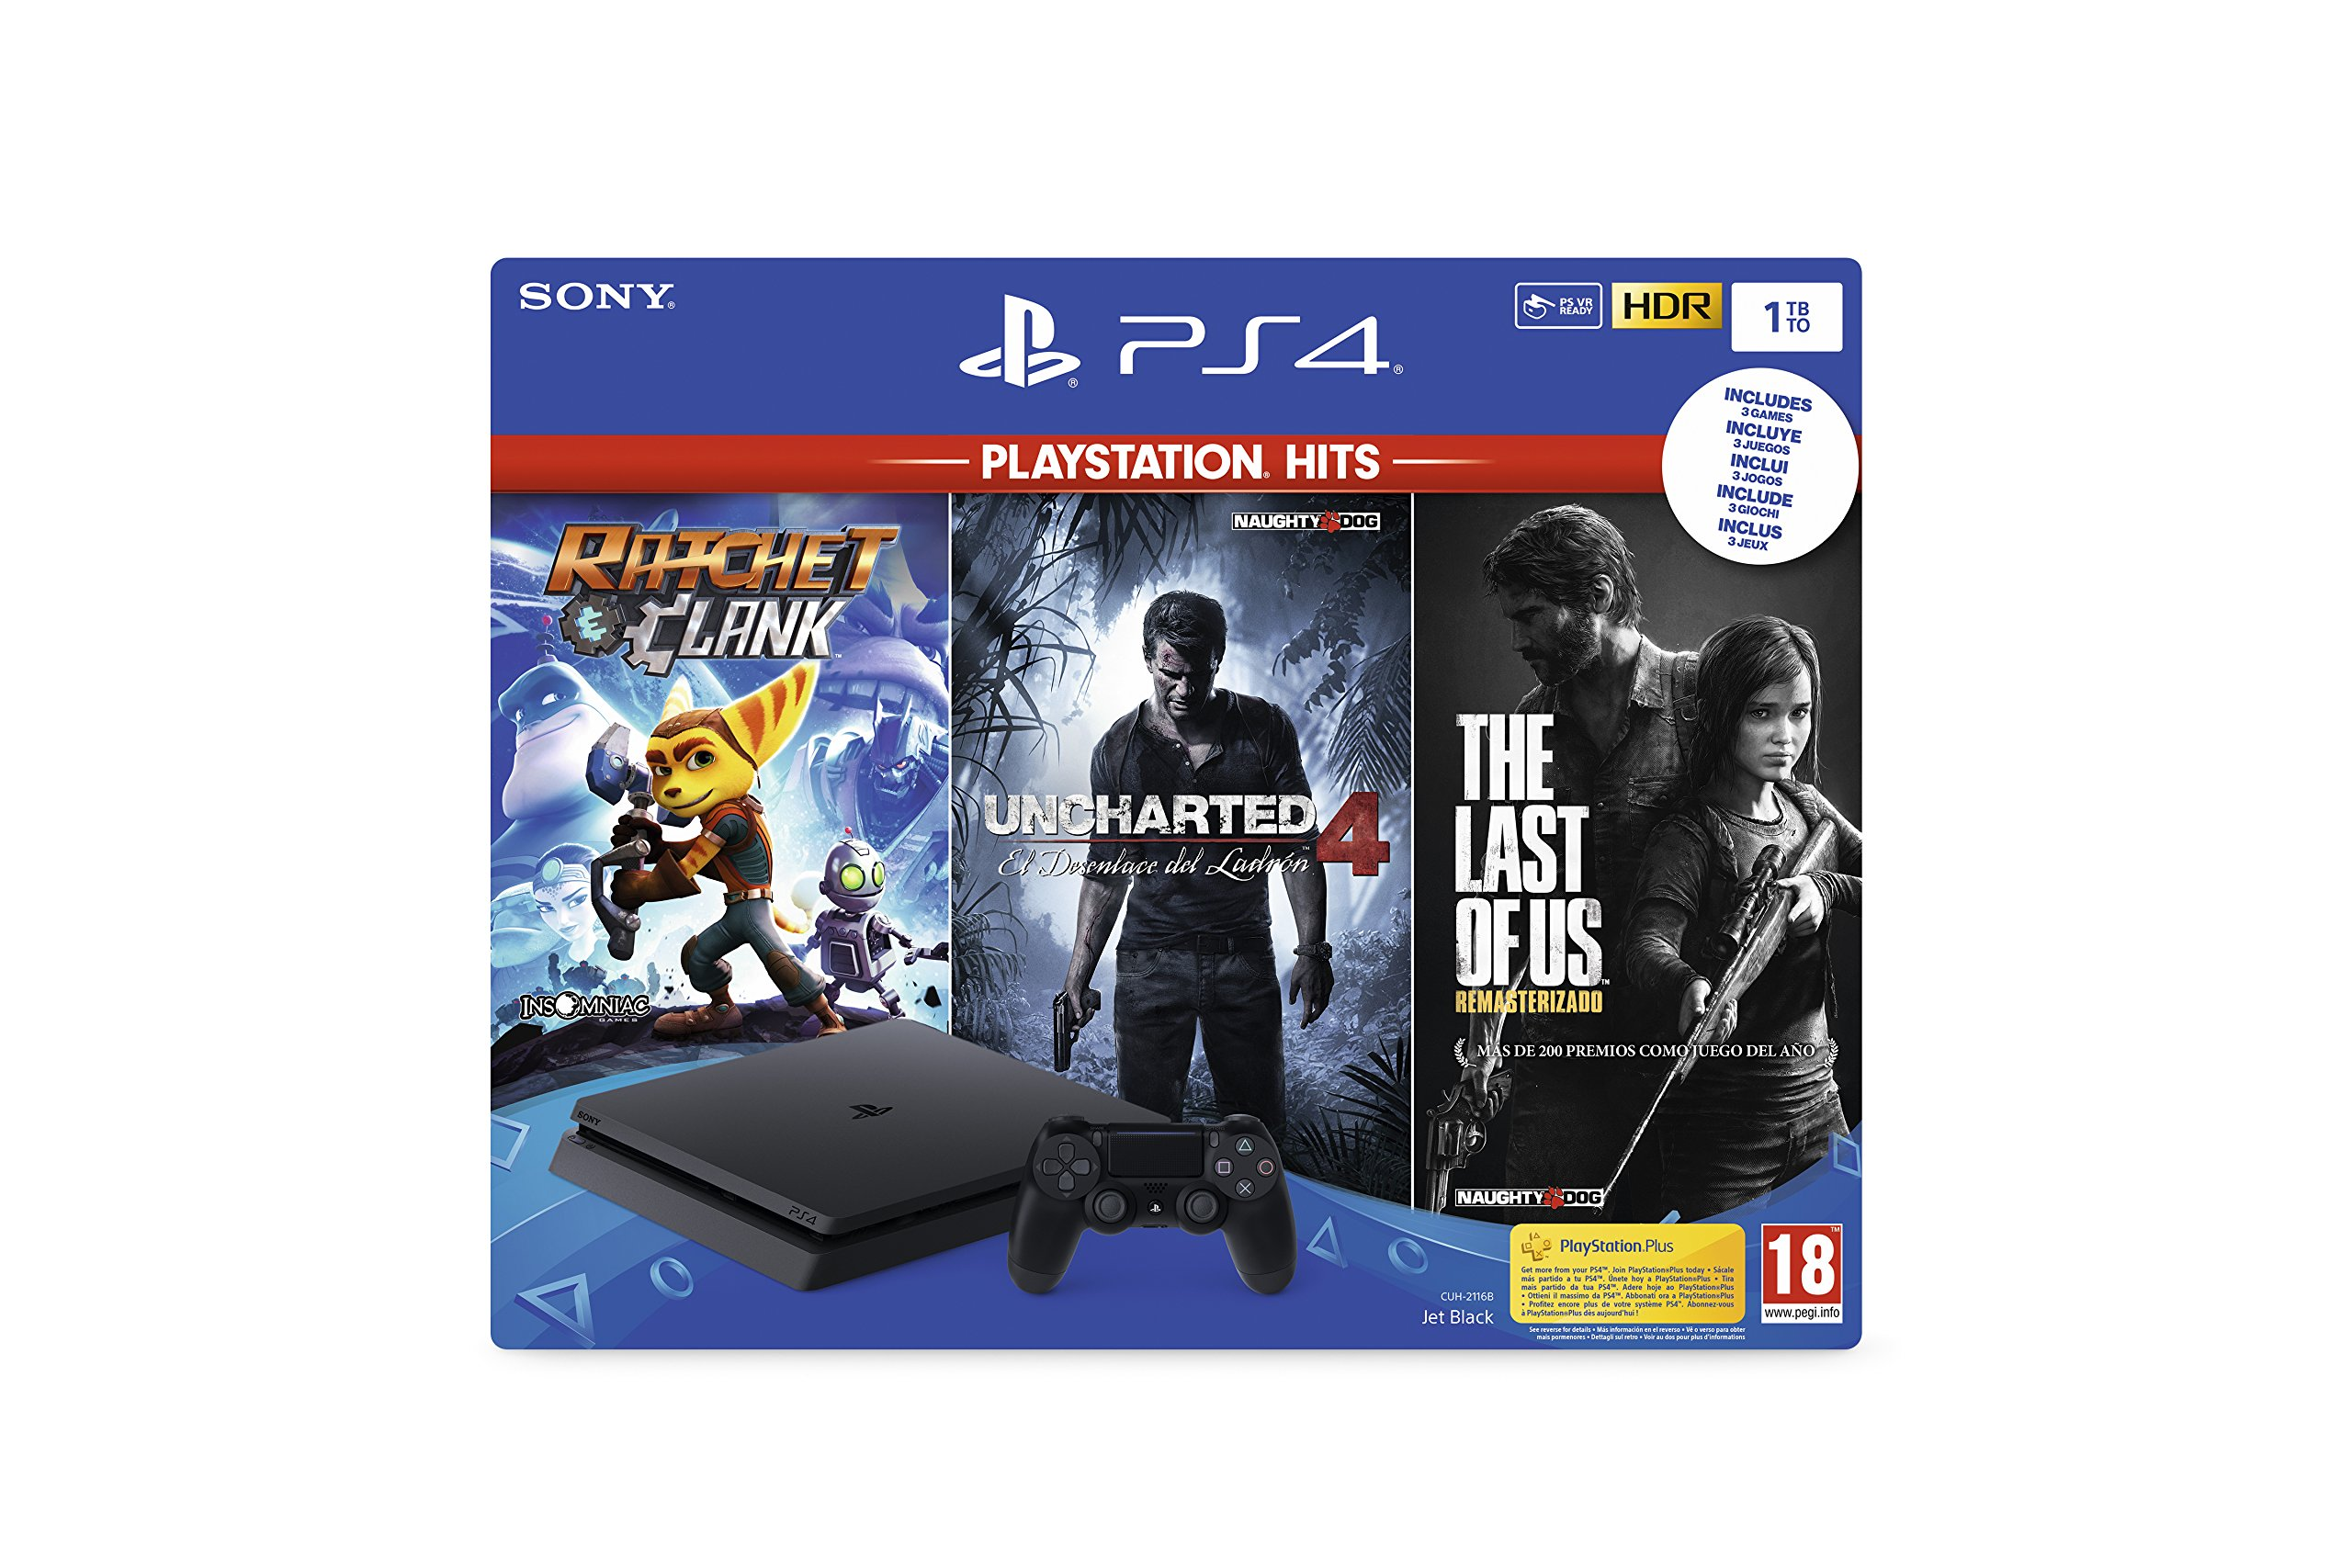 Playstation 4 (PS4) – Consola 1TB + Ratchet & Clank + The Last of Us + Uncharted 4